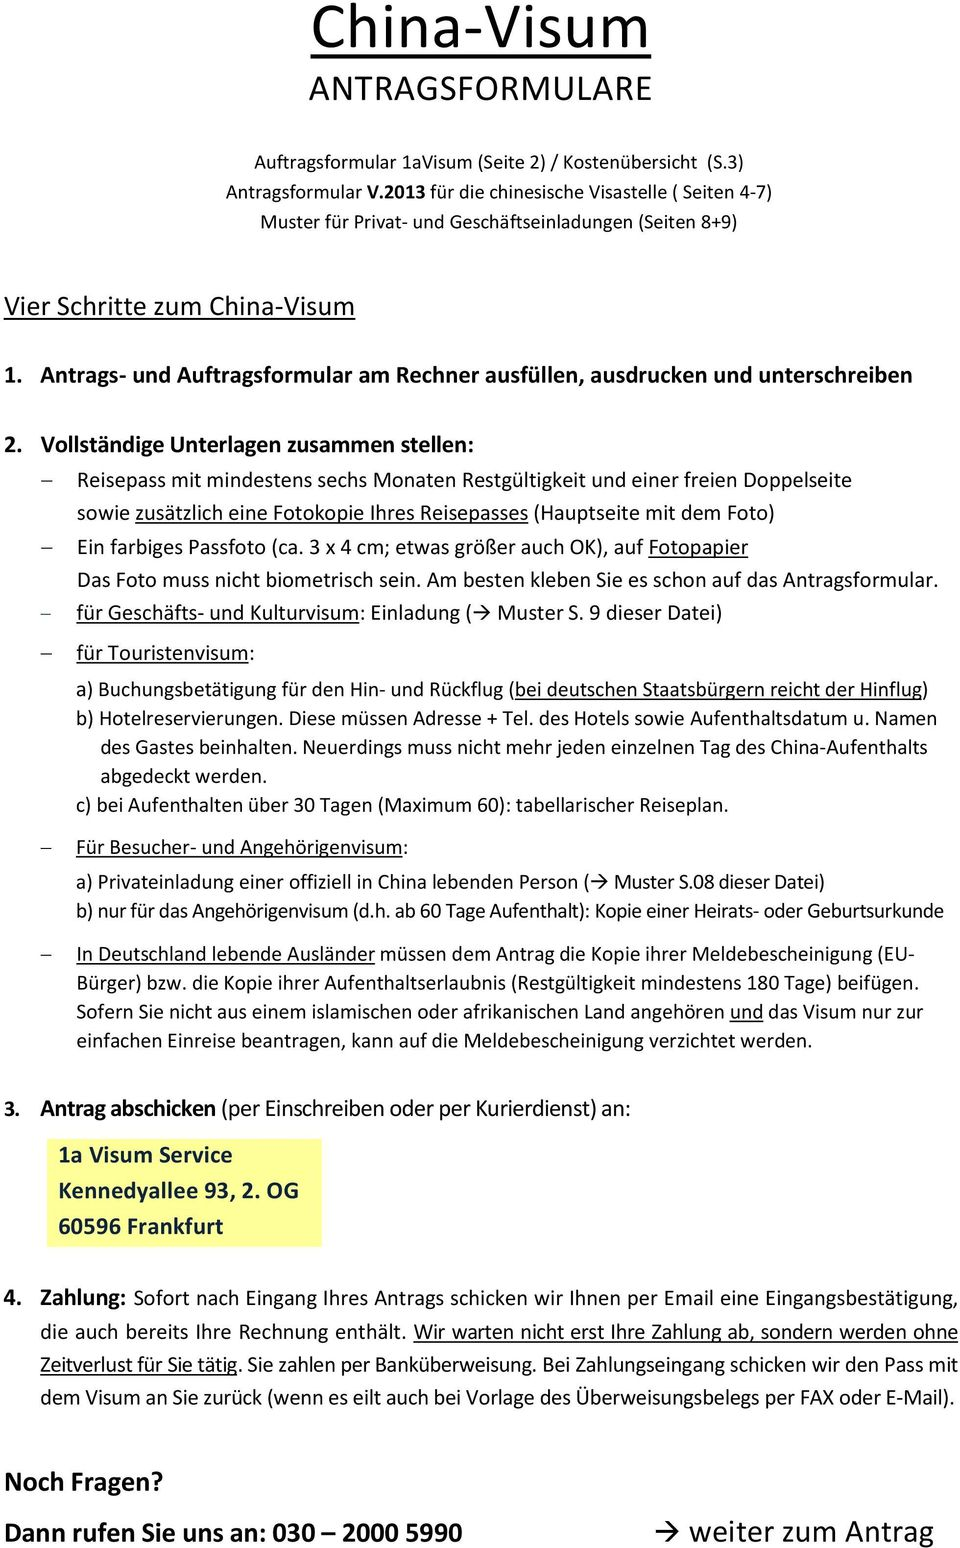 China-Visum ANTRAGSFORMULARE - PDF